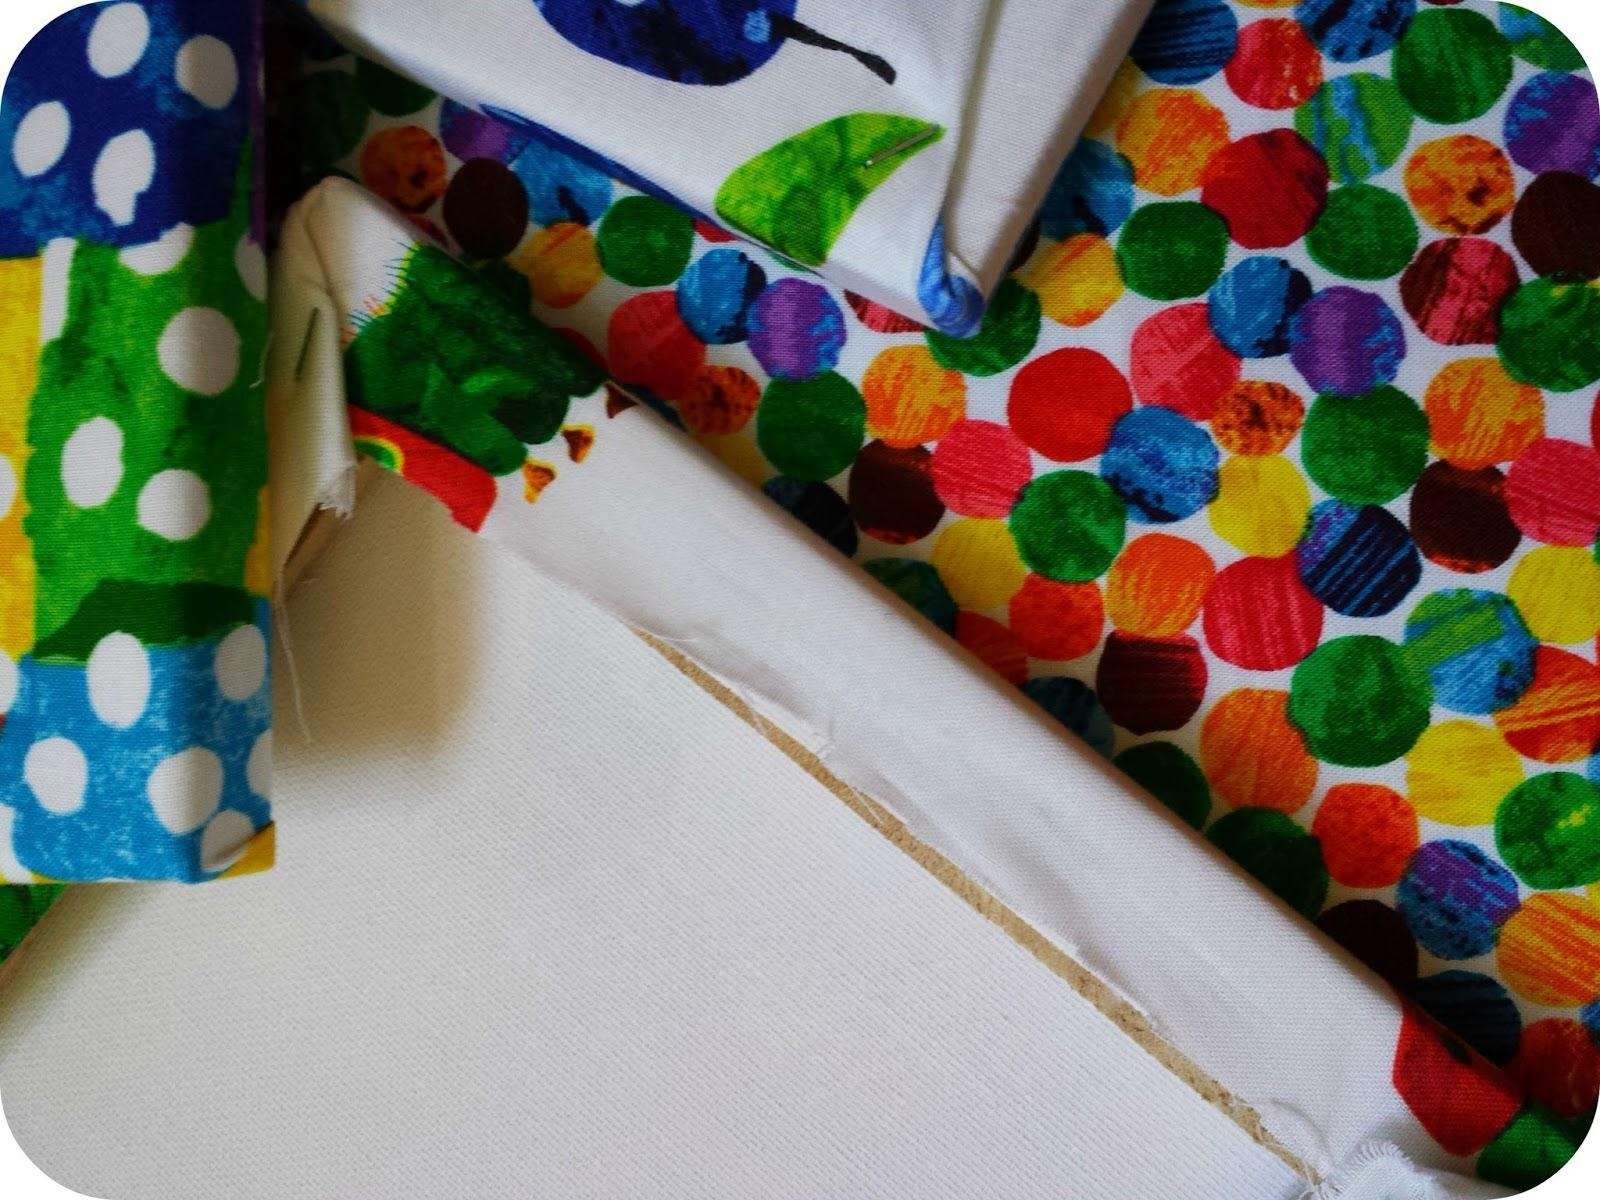 The Adventure Of Parenthood: How To Make Very Hungry Caterpillar For Very Hungry Caterpillar Wall Art (Image 12 of 20)